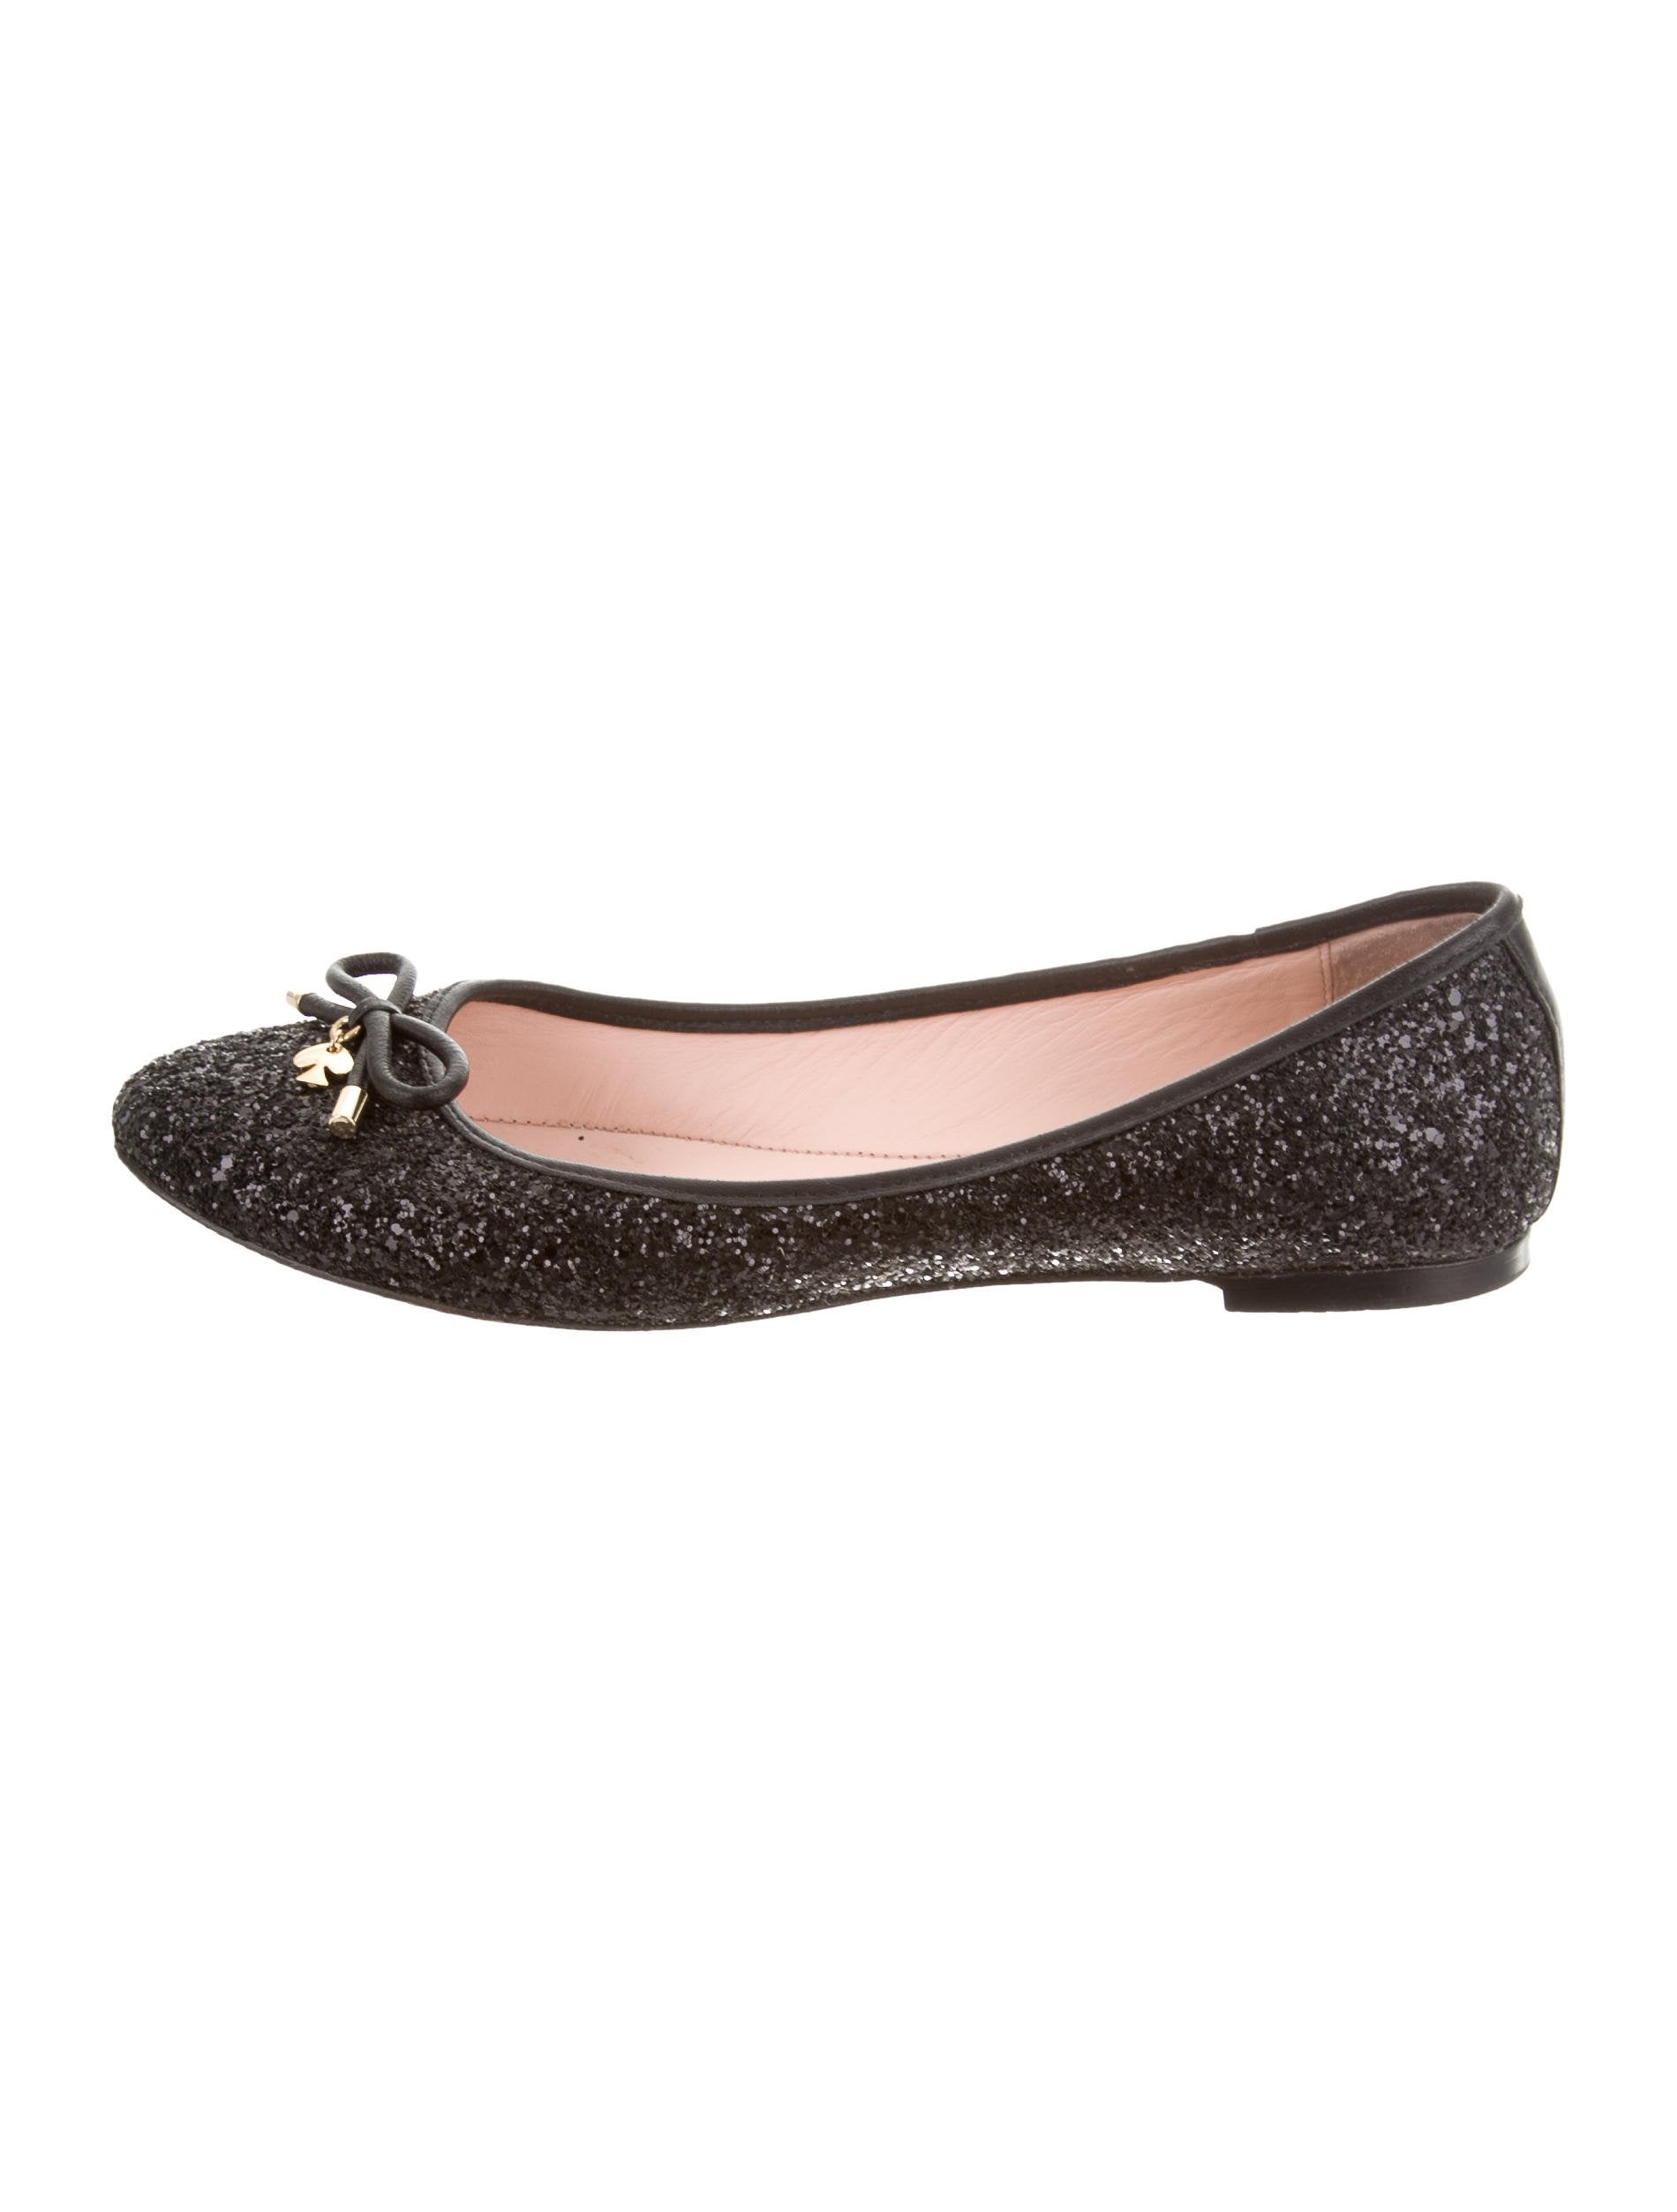 Kate Spade New York Glitter Round-Toe Loafers sale cheap price free shipping marketable uHlNQM01O